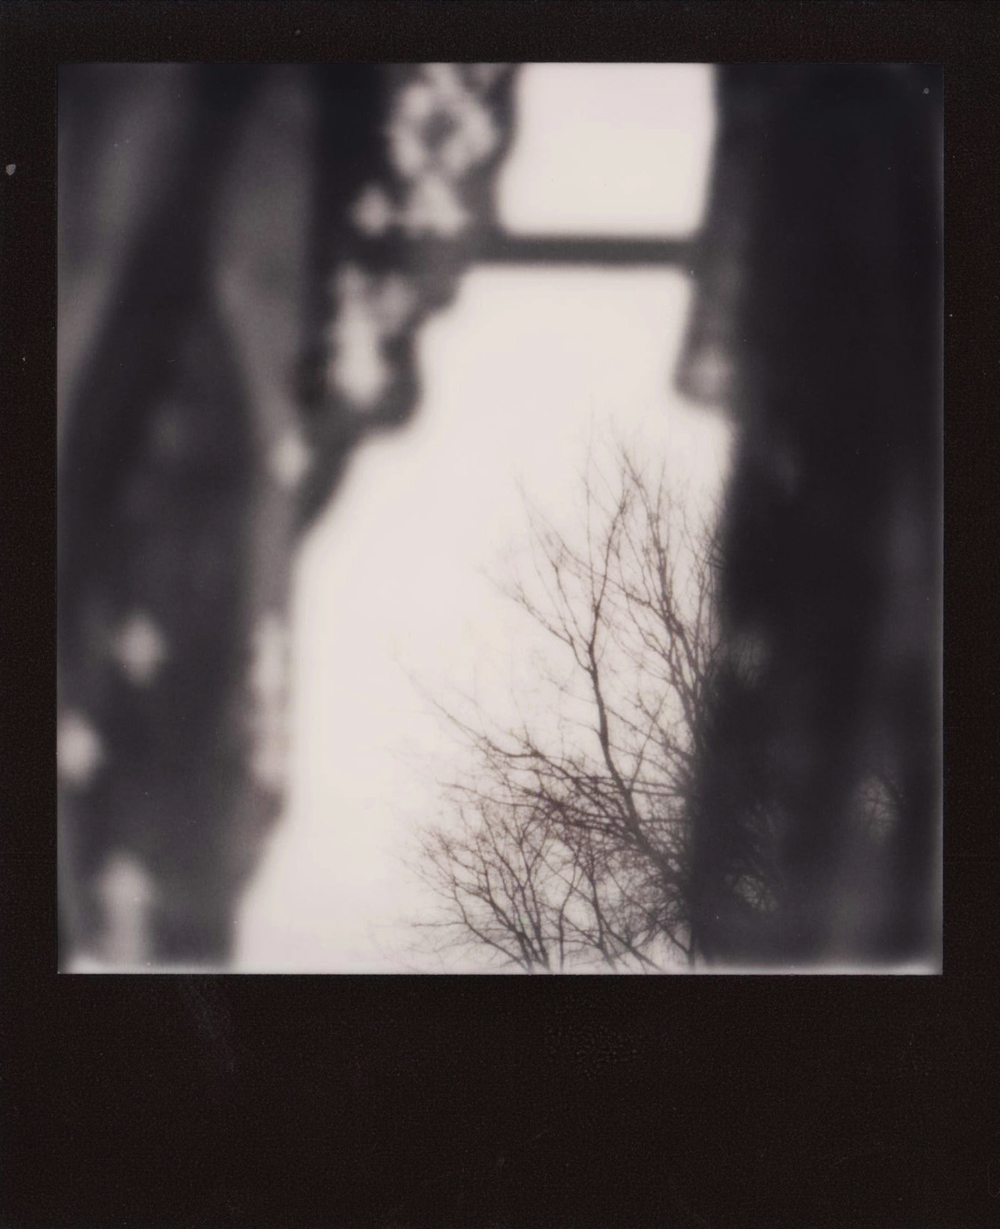 Abigail Crone | Winter Feeling | SX70 | Impossible Project Black and White